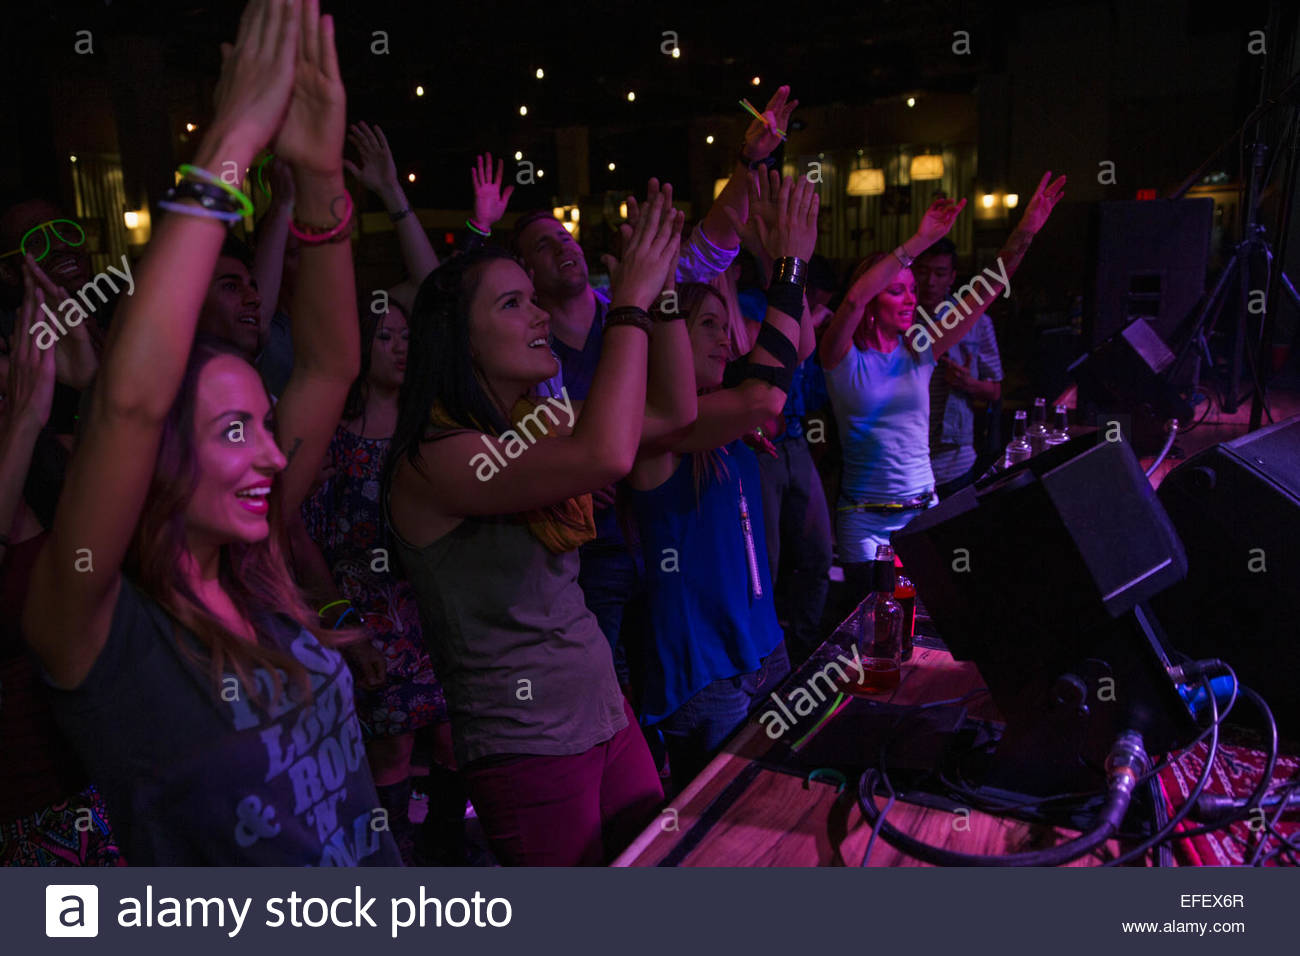 Crowd cheering at music concert - Stock Image